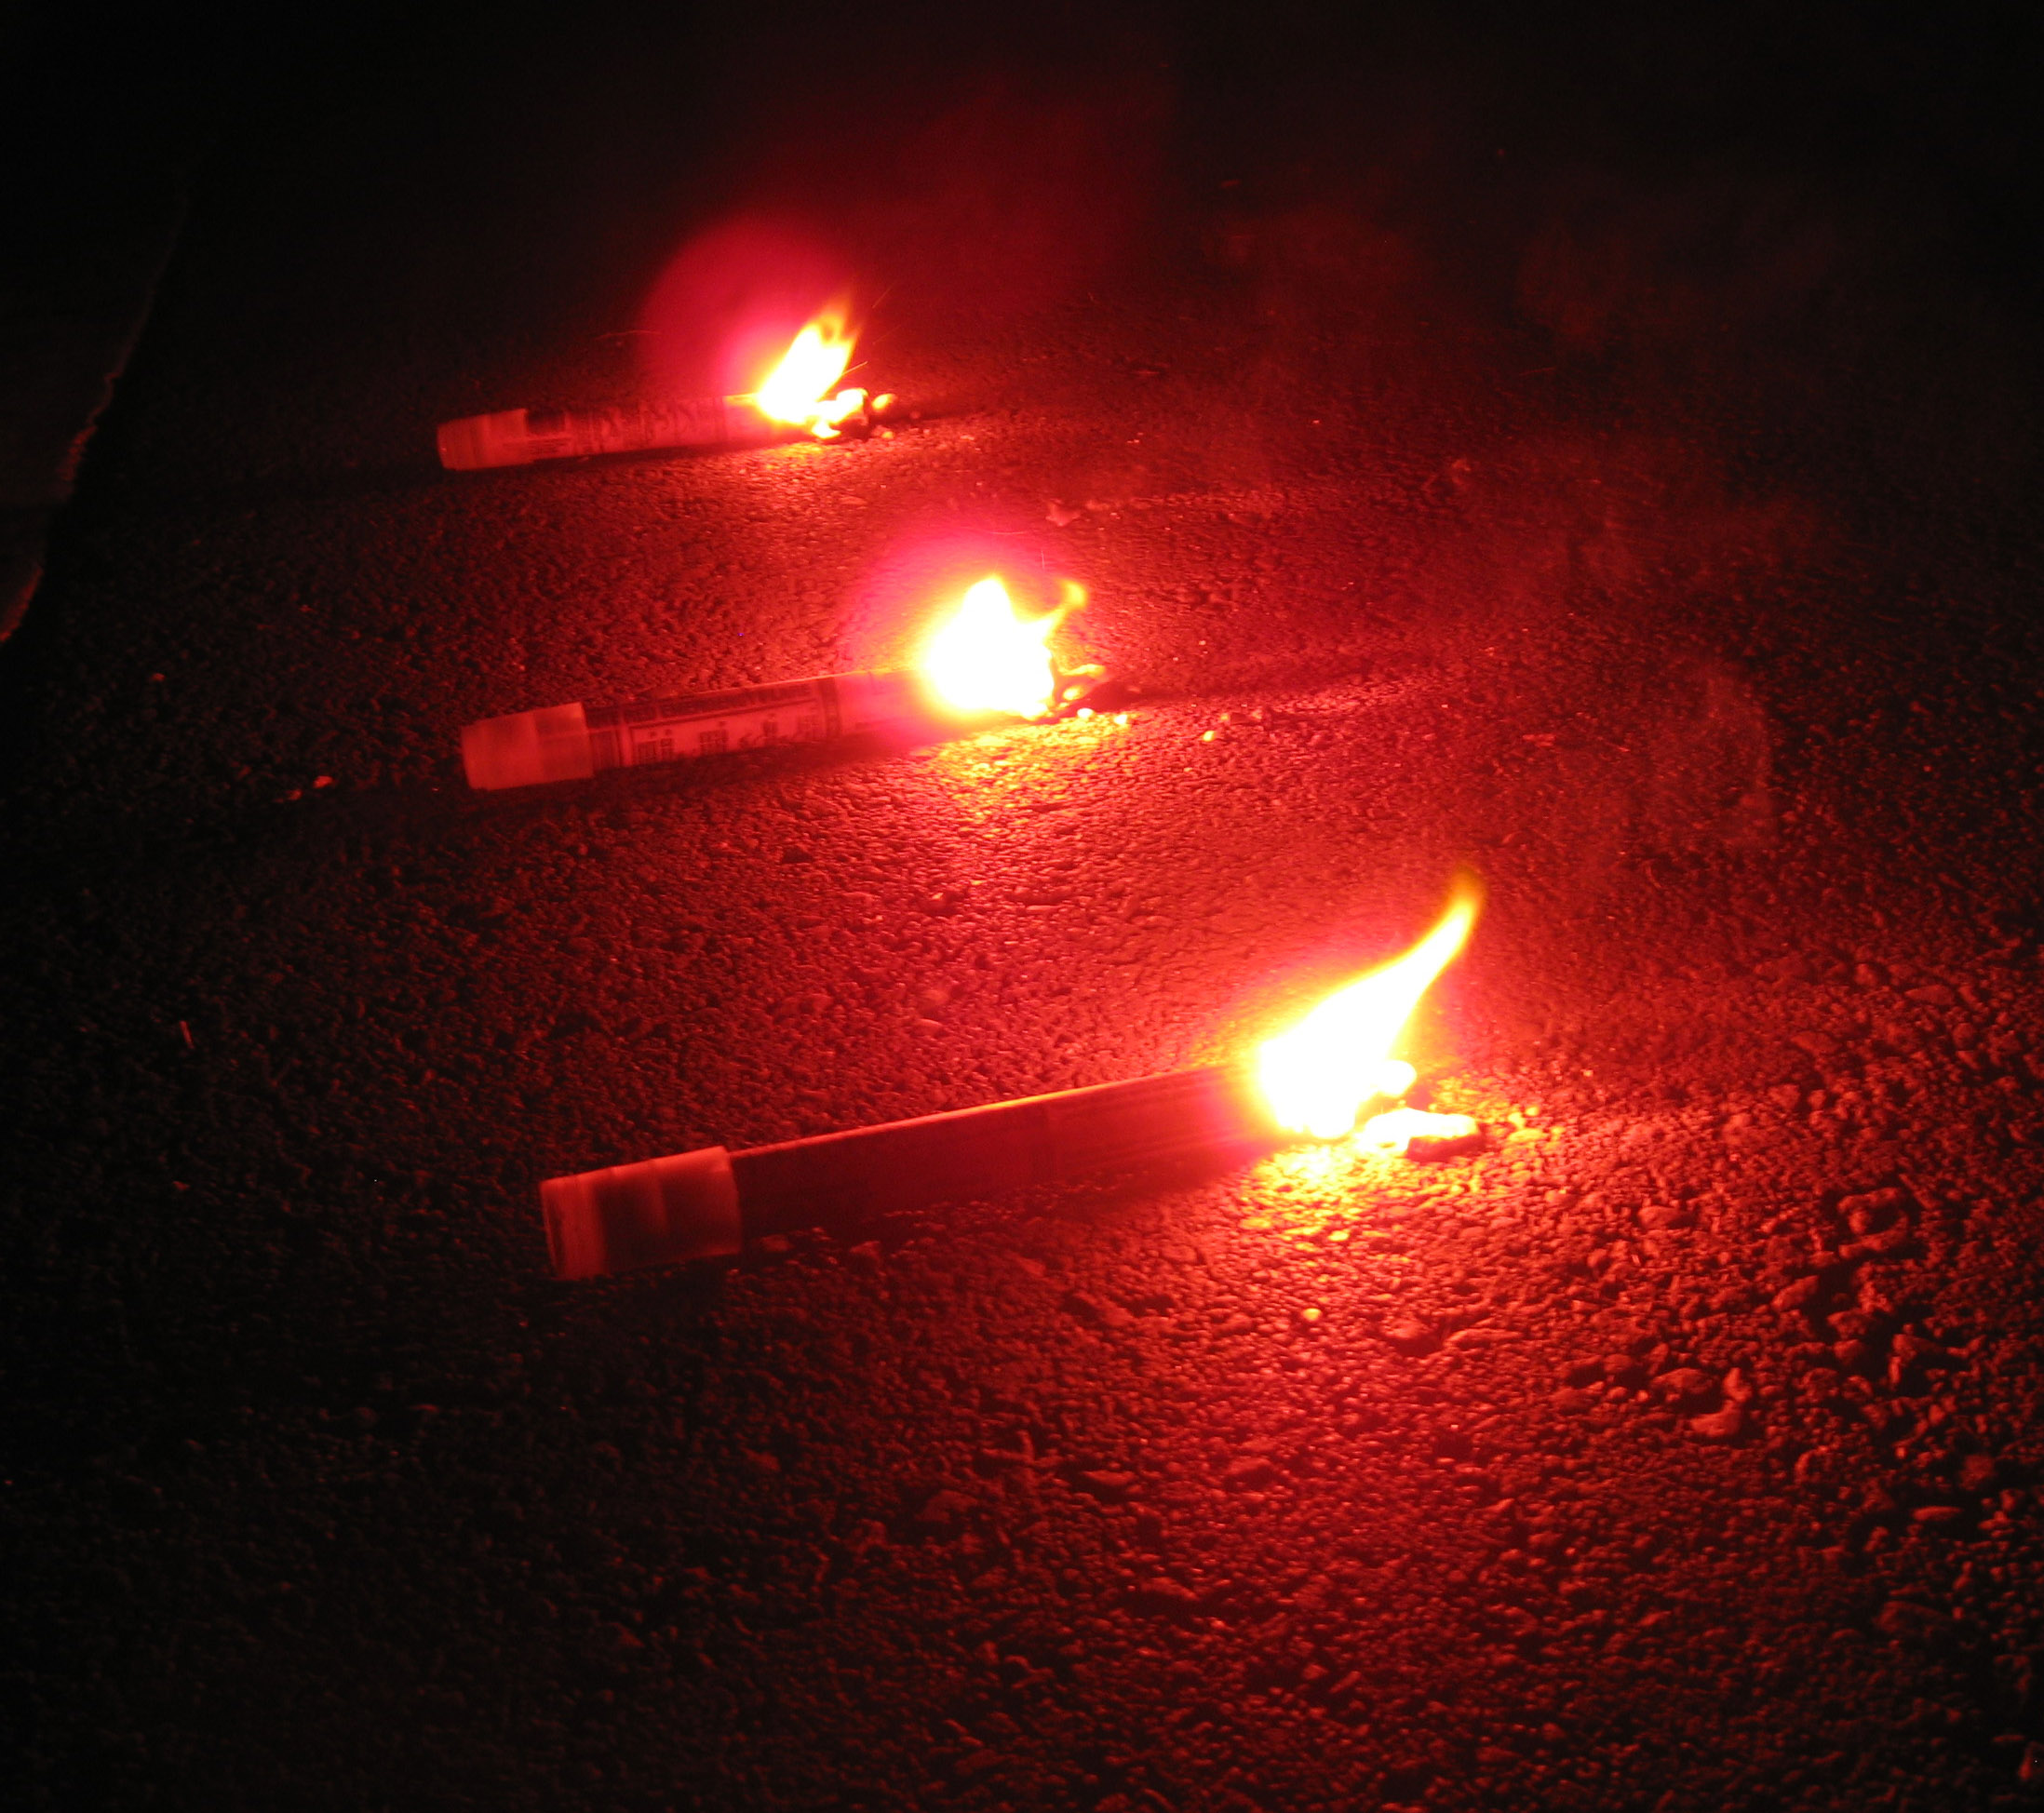 Usage of flares to attract help